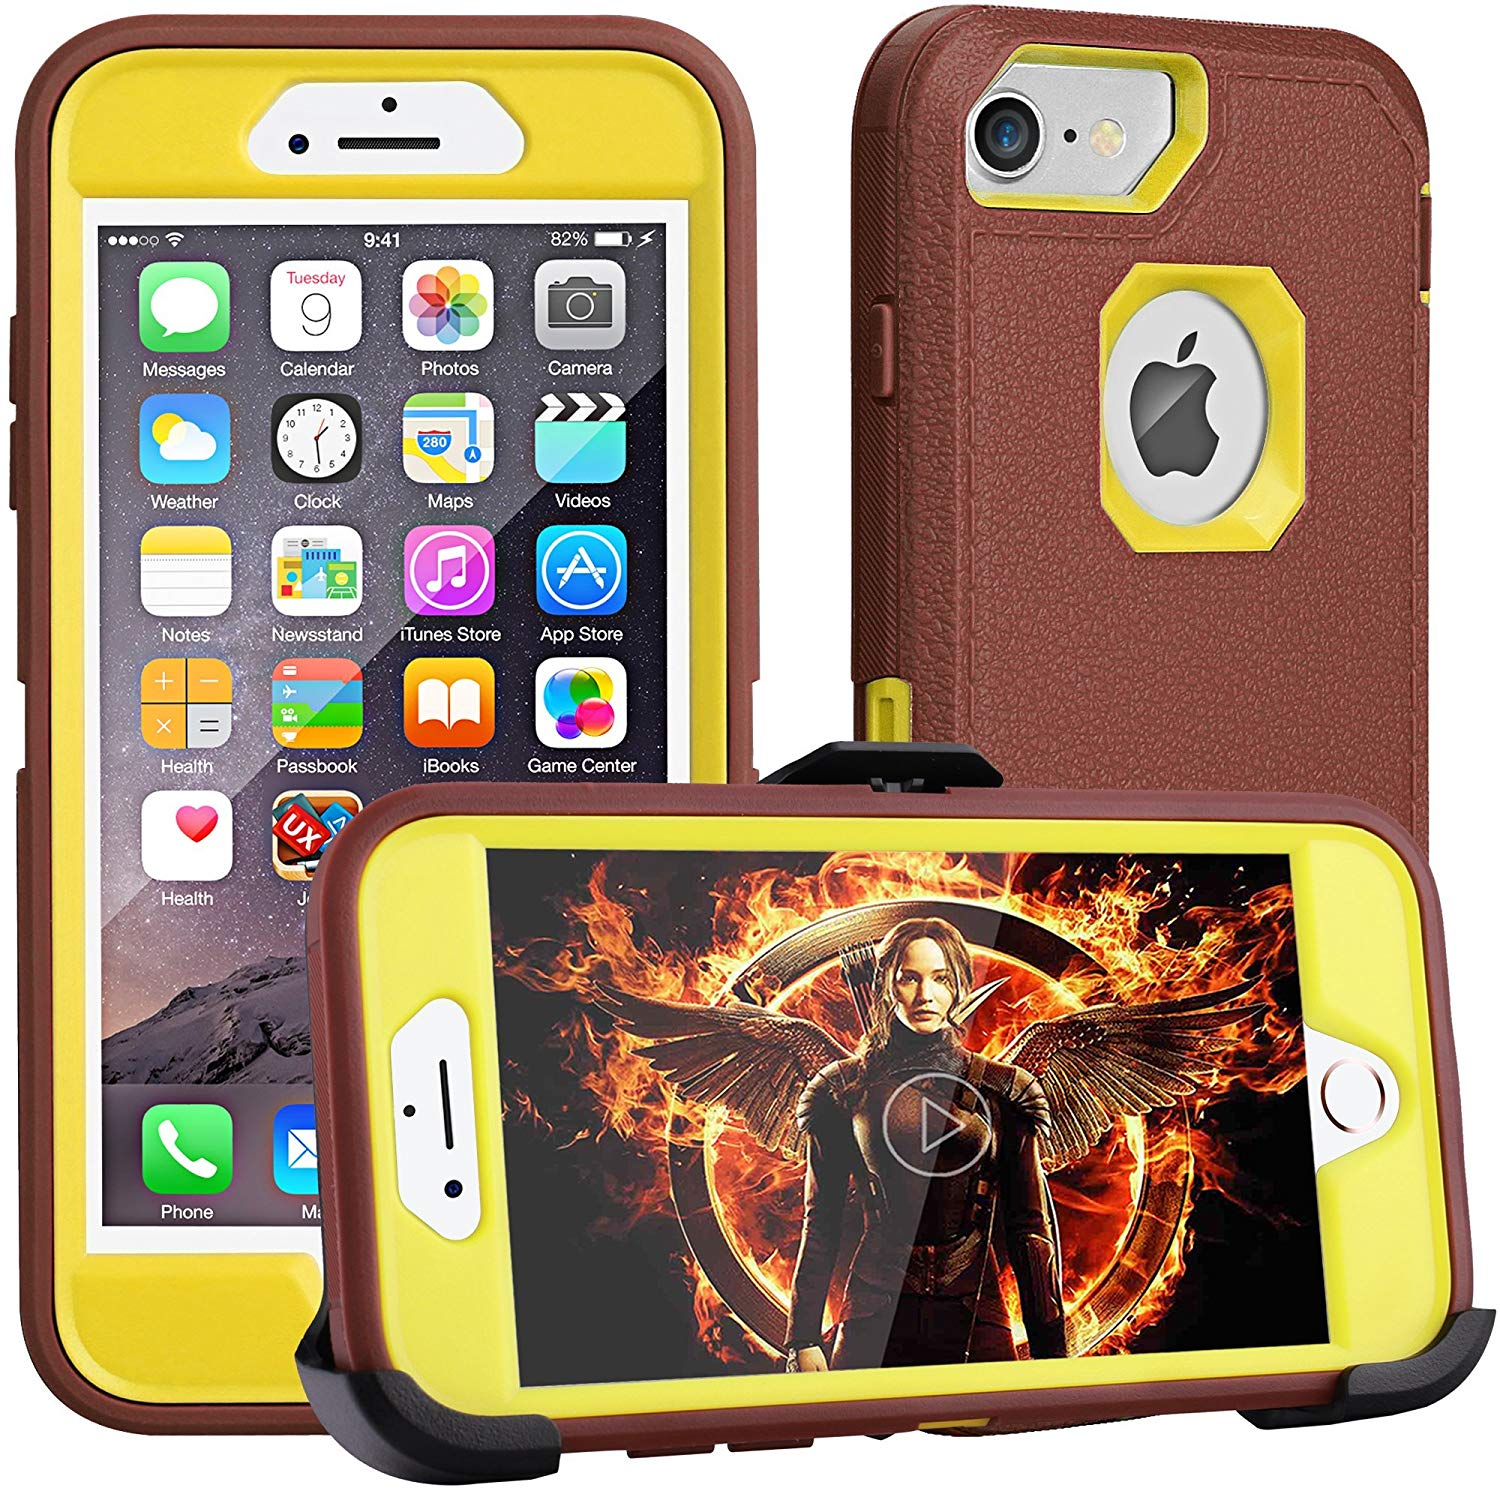 iPhone 8 case,iPhone 7 Case, iPhone 6s Case, FOGEEK [Dust-Proof] Belt-Clip Heavy Duty Kickstand Cover [Shockproof] PC+TPU Shell for Apple iPhone 7 and iPhone 6/6s(Brown and Yellow)